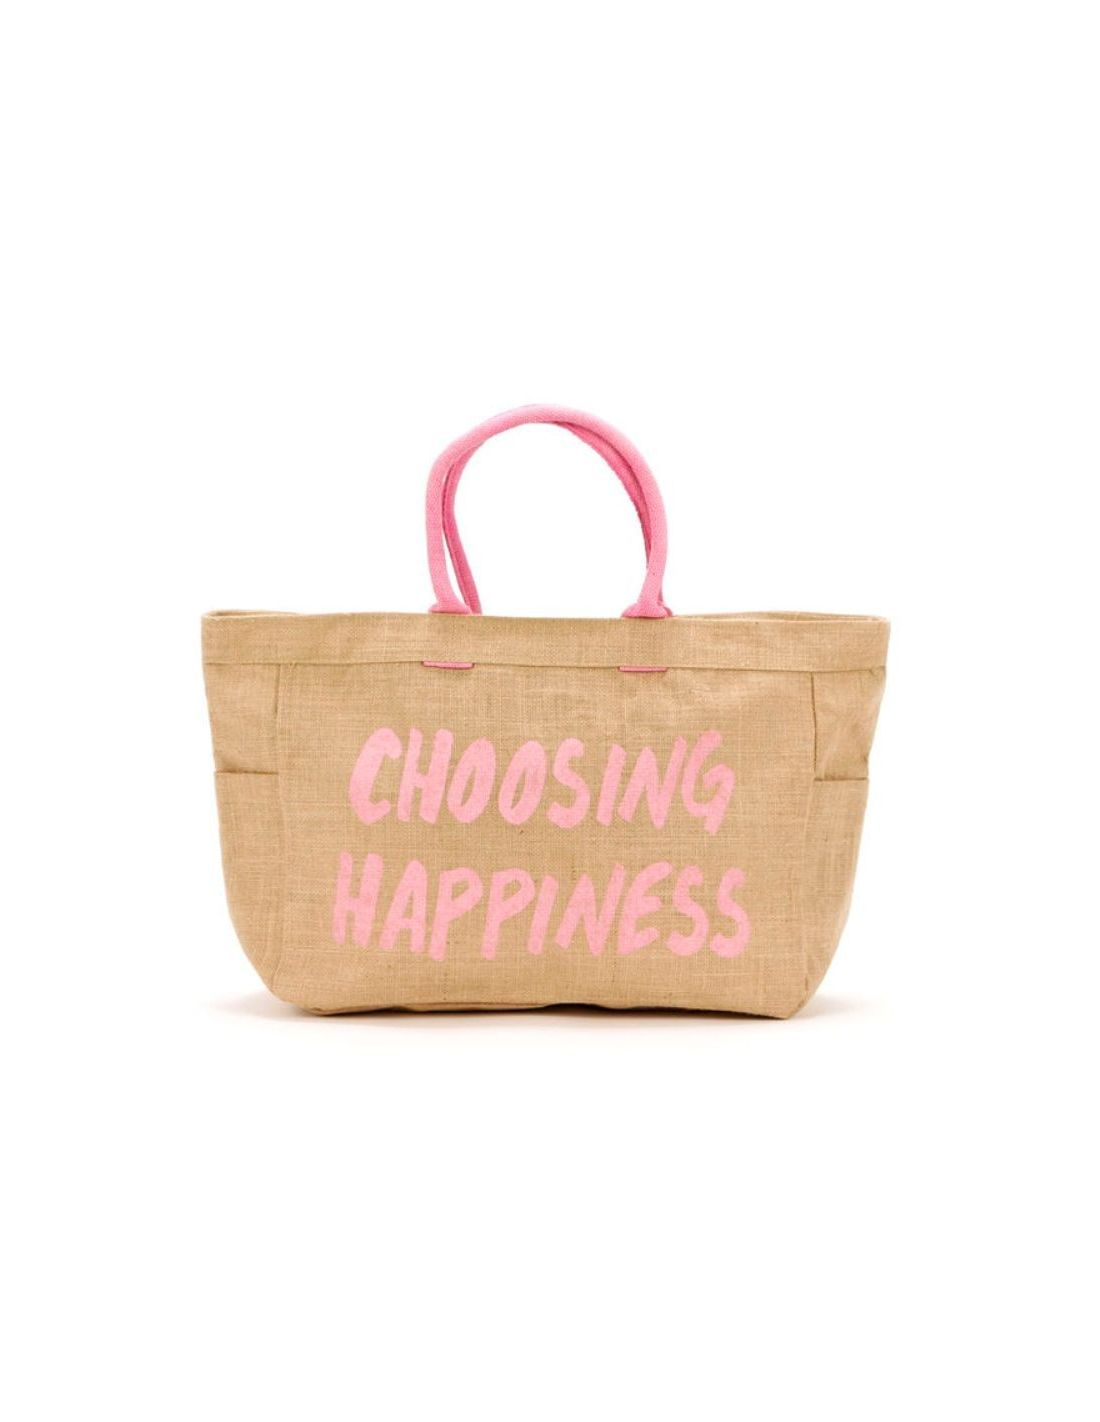 Bolso playa con frase: Choosing Happiness